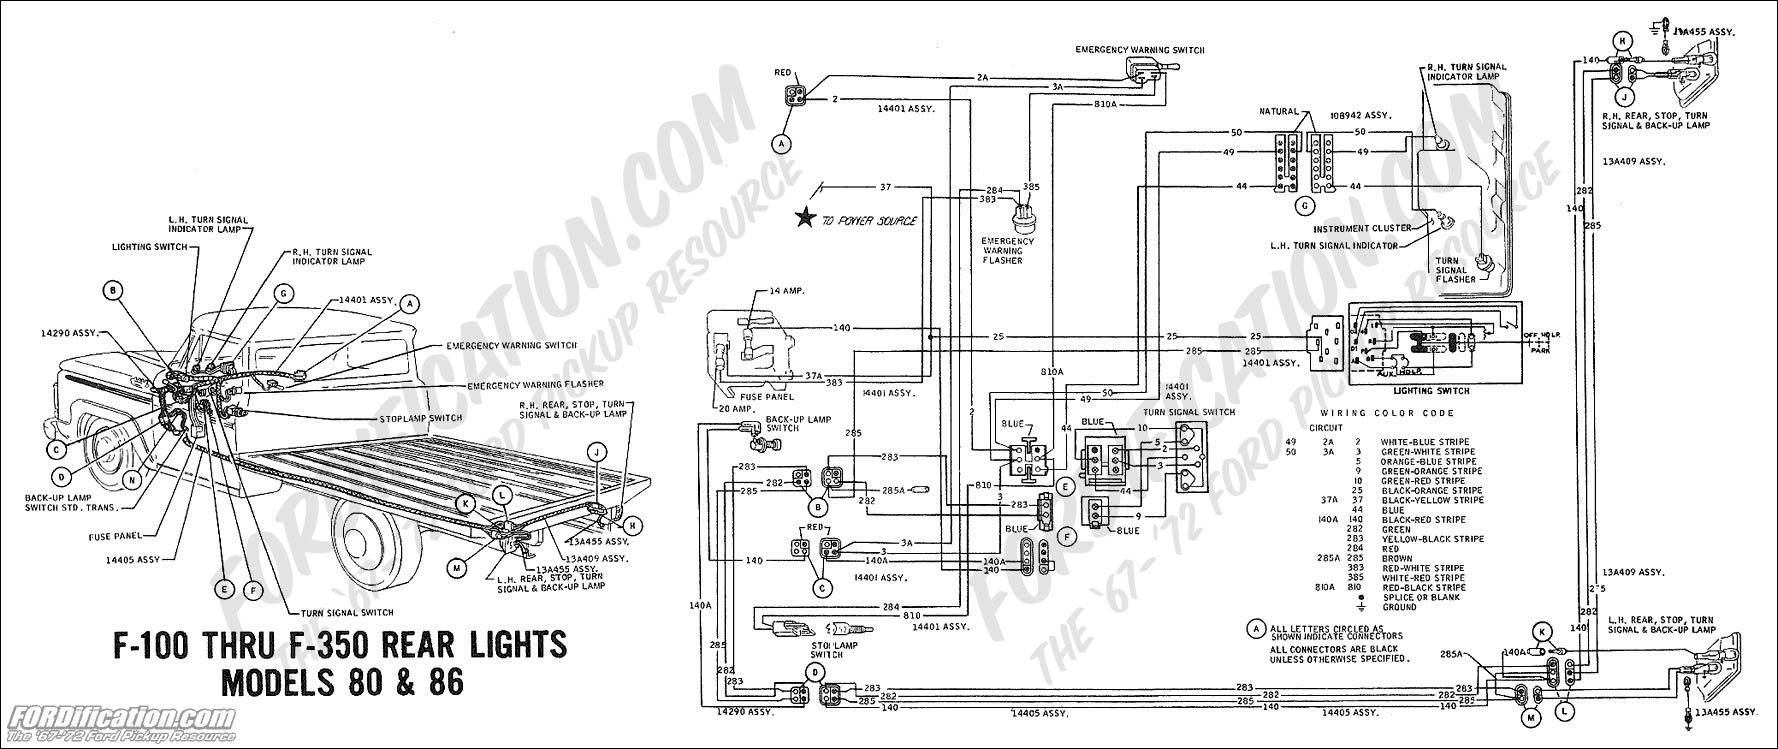 wiring_69rearlights mdls80 86 ford truck technical drawings and schematics section h wiring Ford Trailer Brake Wiring Diagram at webbmarketing.co